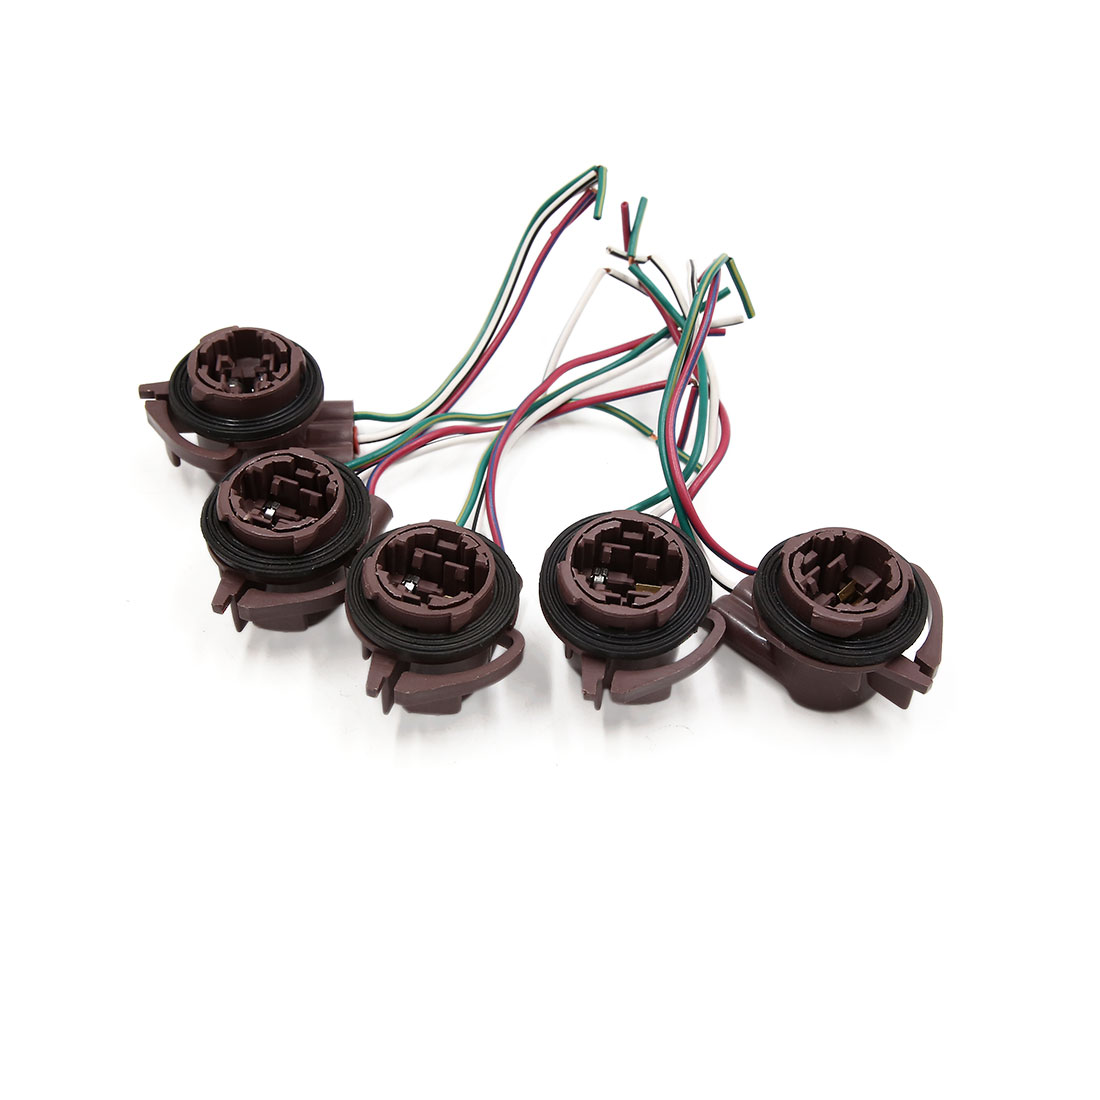 hight resolution of 5pcs 3157 3 wires car turn signal light lamp bulb wired harness socket connector walmart canada